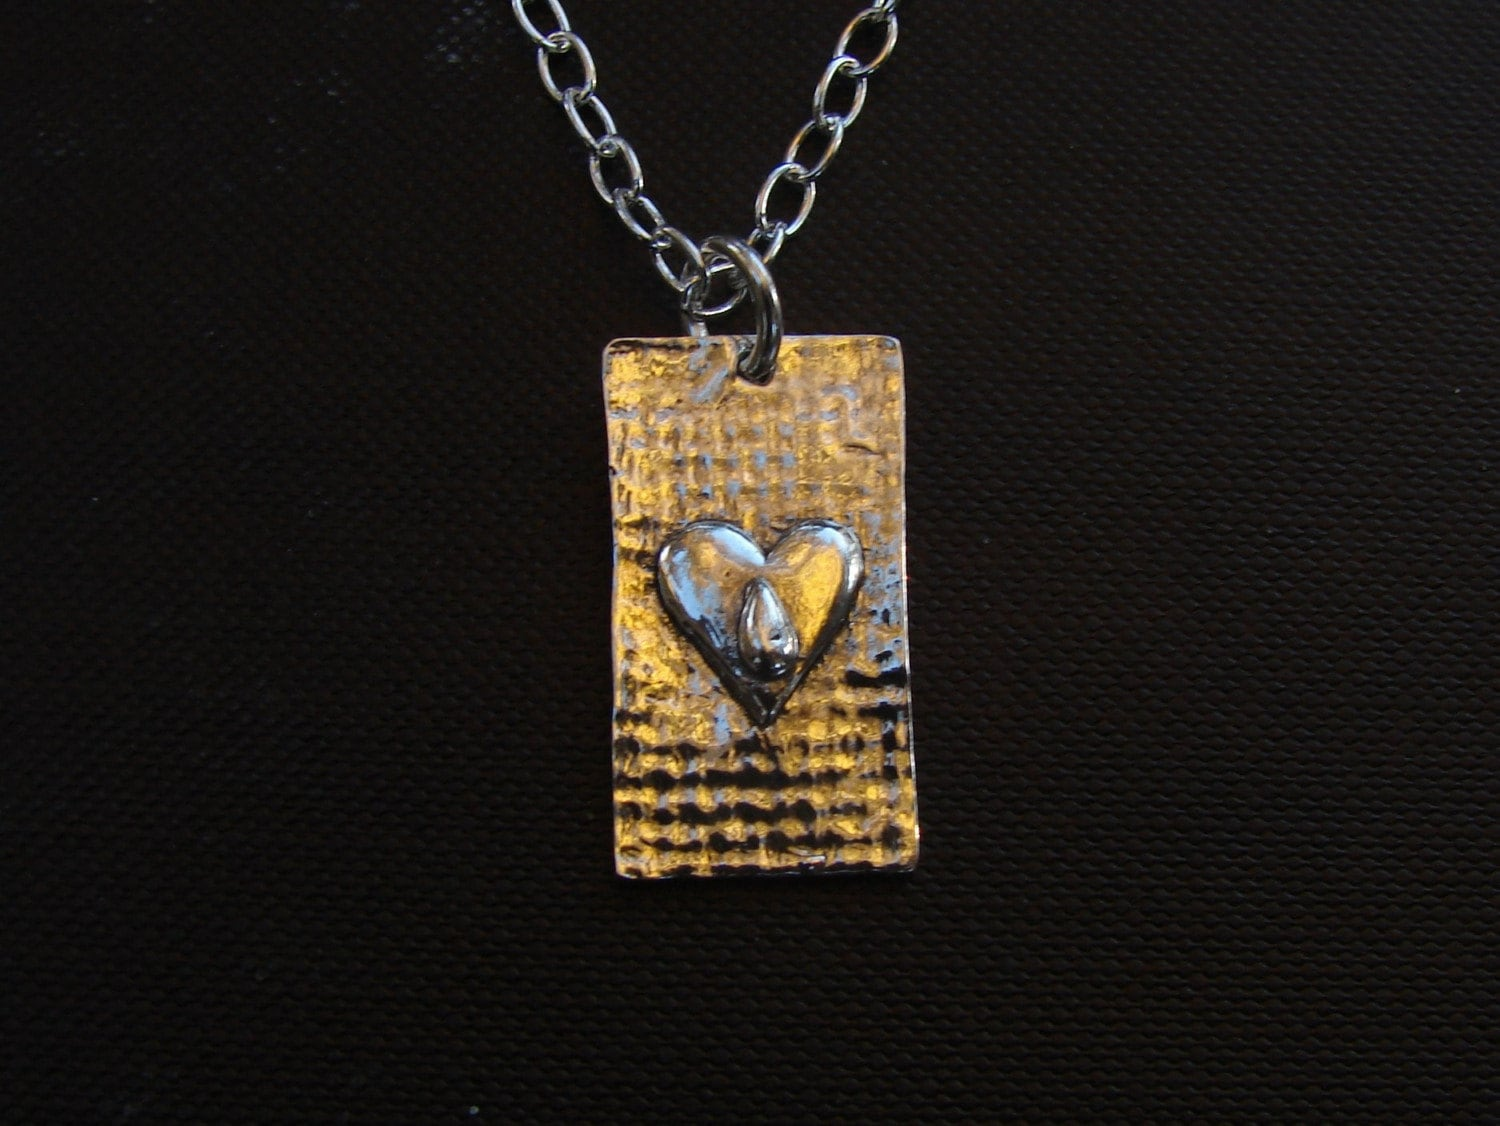 Tears necklace on - NILMDTS Fundraiser